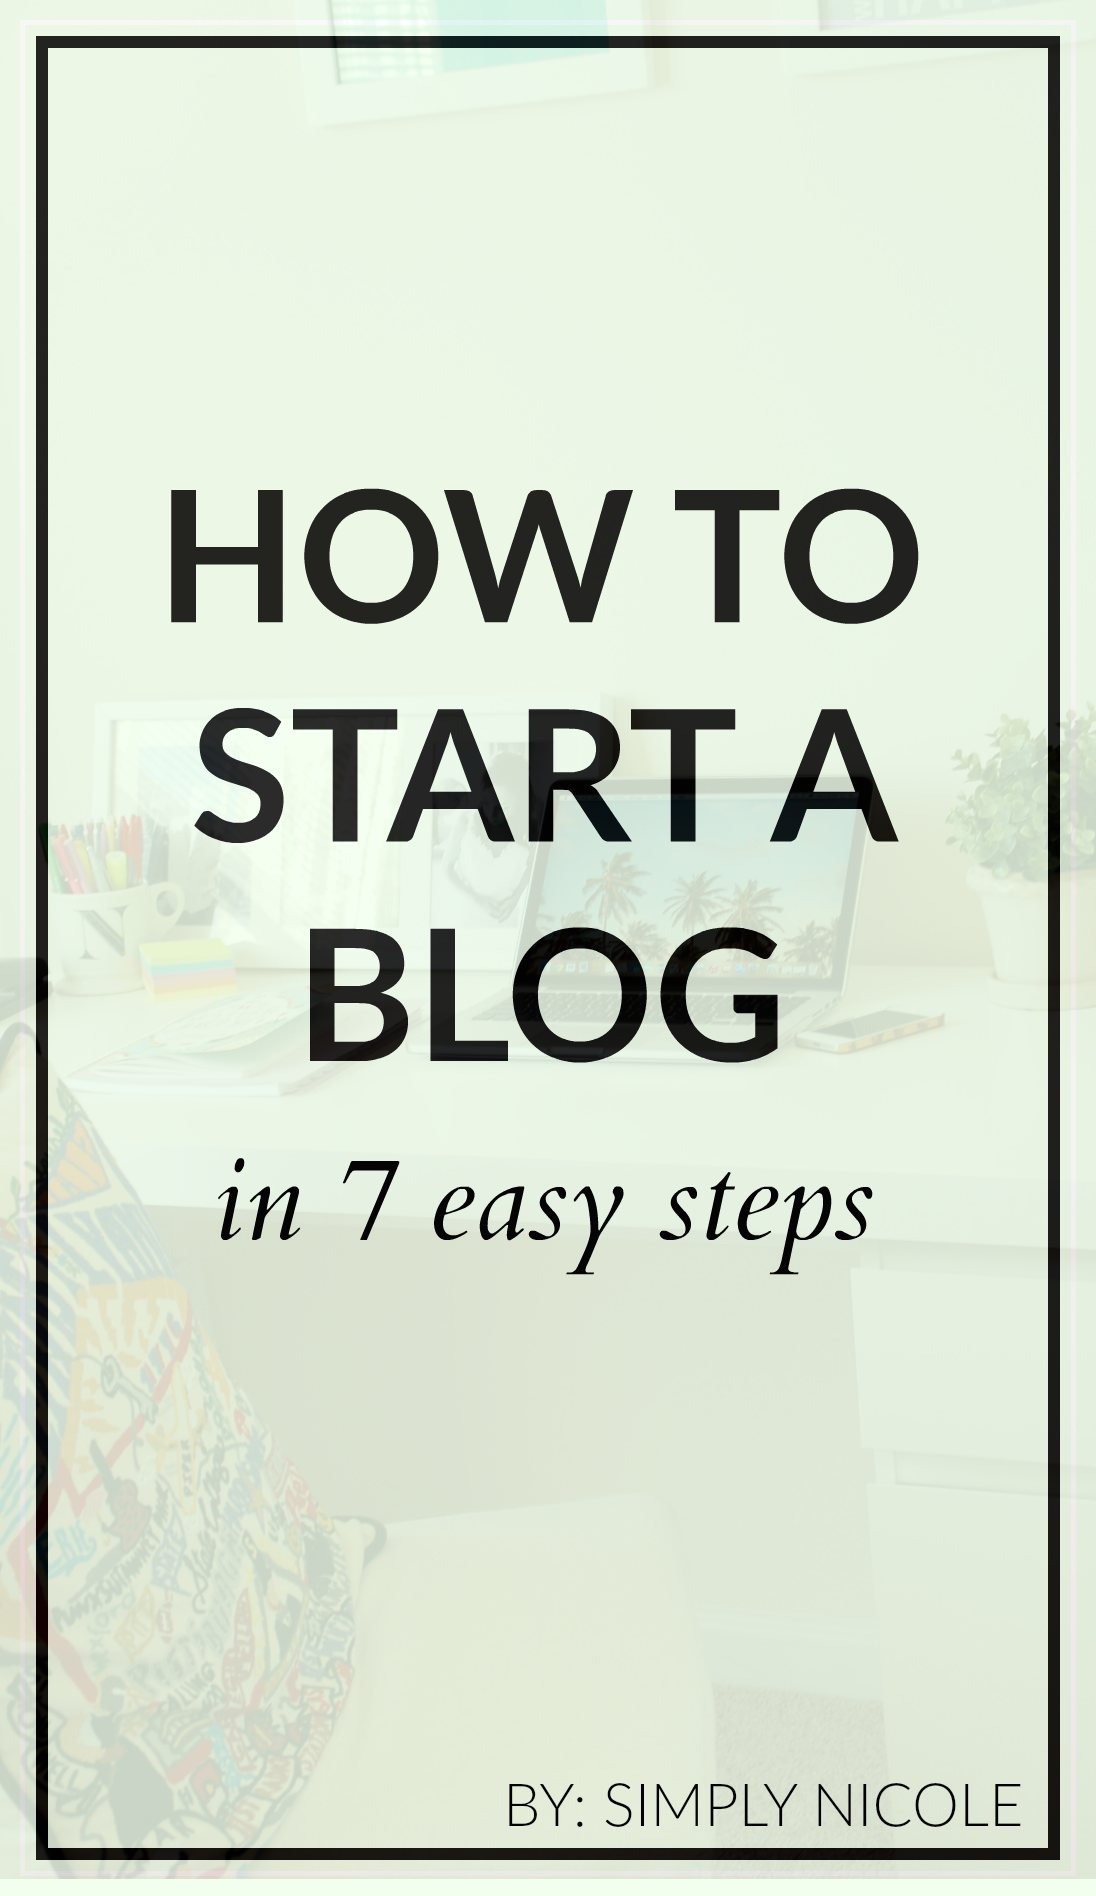 How to Start a Blog in 7 Easy Steps